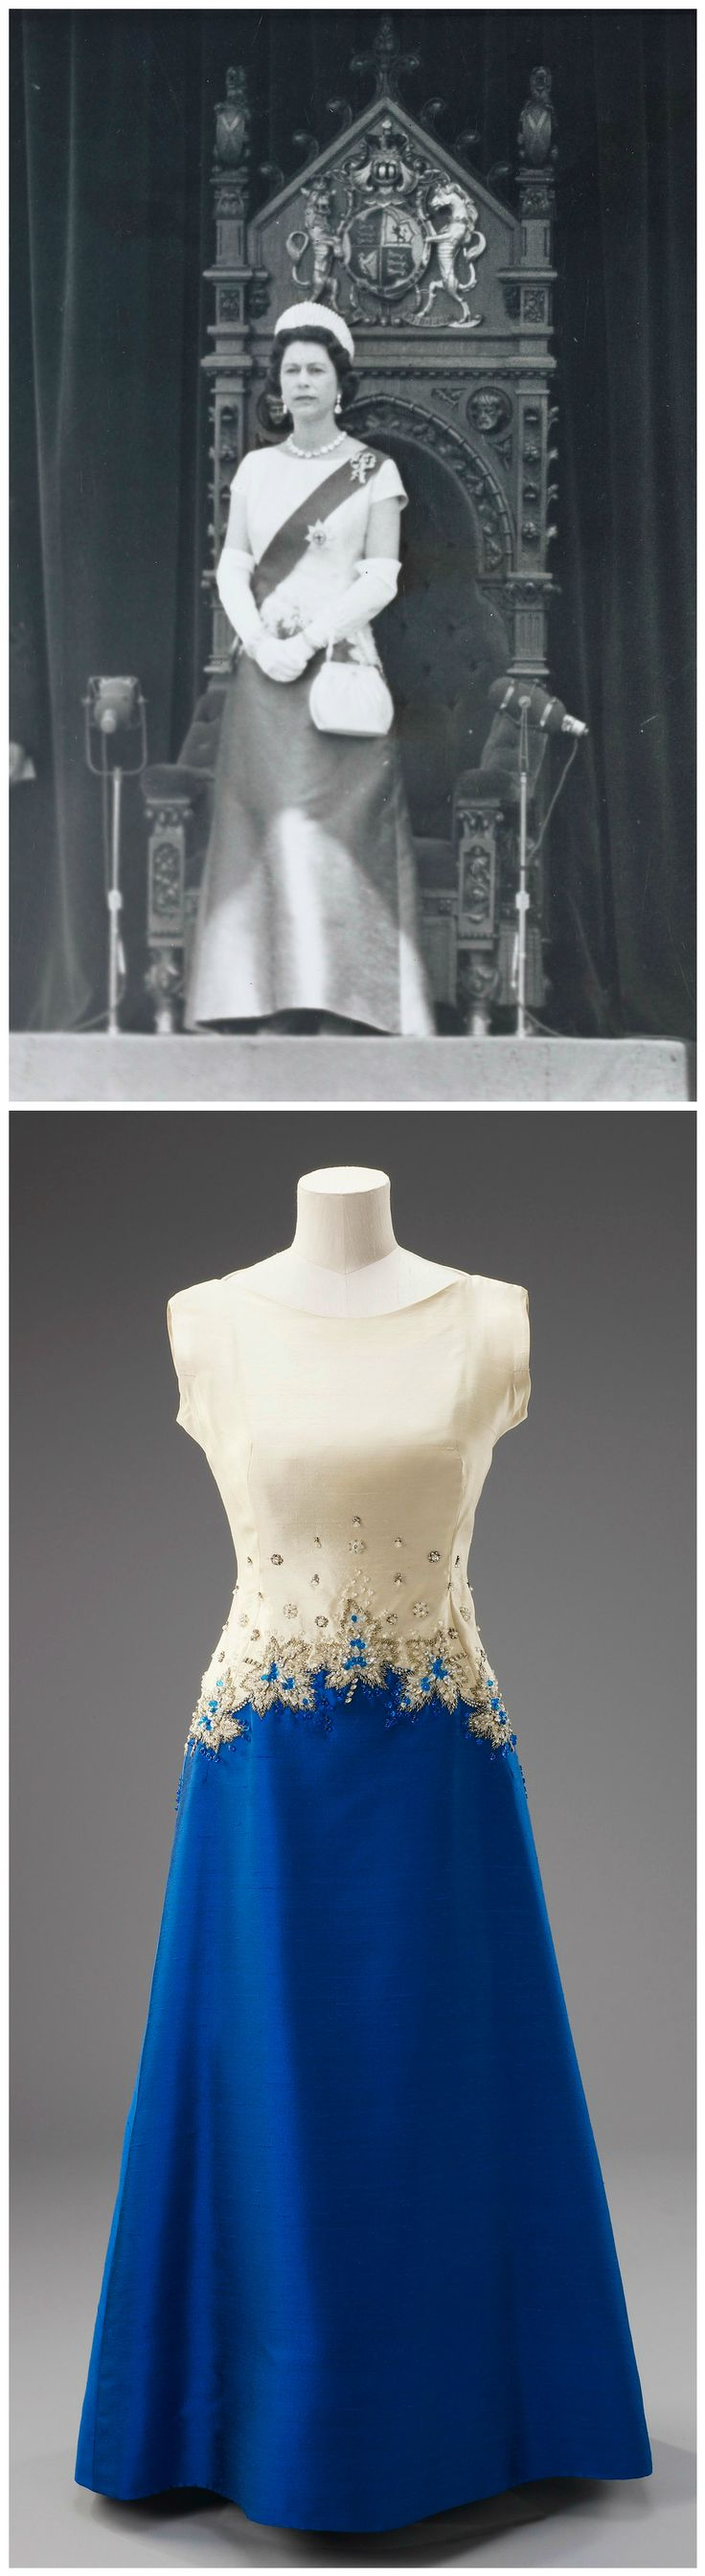 Evening gown, by Sir Norman Hartnell, 1967. Silk crêpe embroidered with crystal beads, silver bugle beads, sequins and diamanté. H.M. Queen Elizabeth II wore this dress for the service held on July 1, 1967, in Ottawa to commemorate the 100th anniversary of the Confederation of Canada (see accompanying Associated Press photo). Royal Collection Trust.